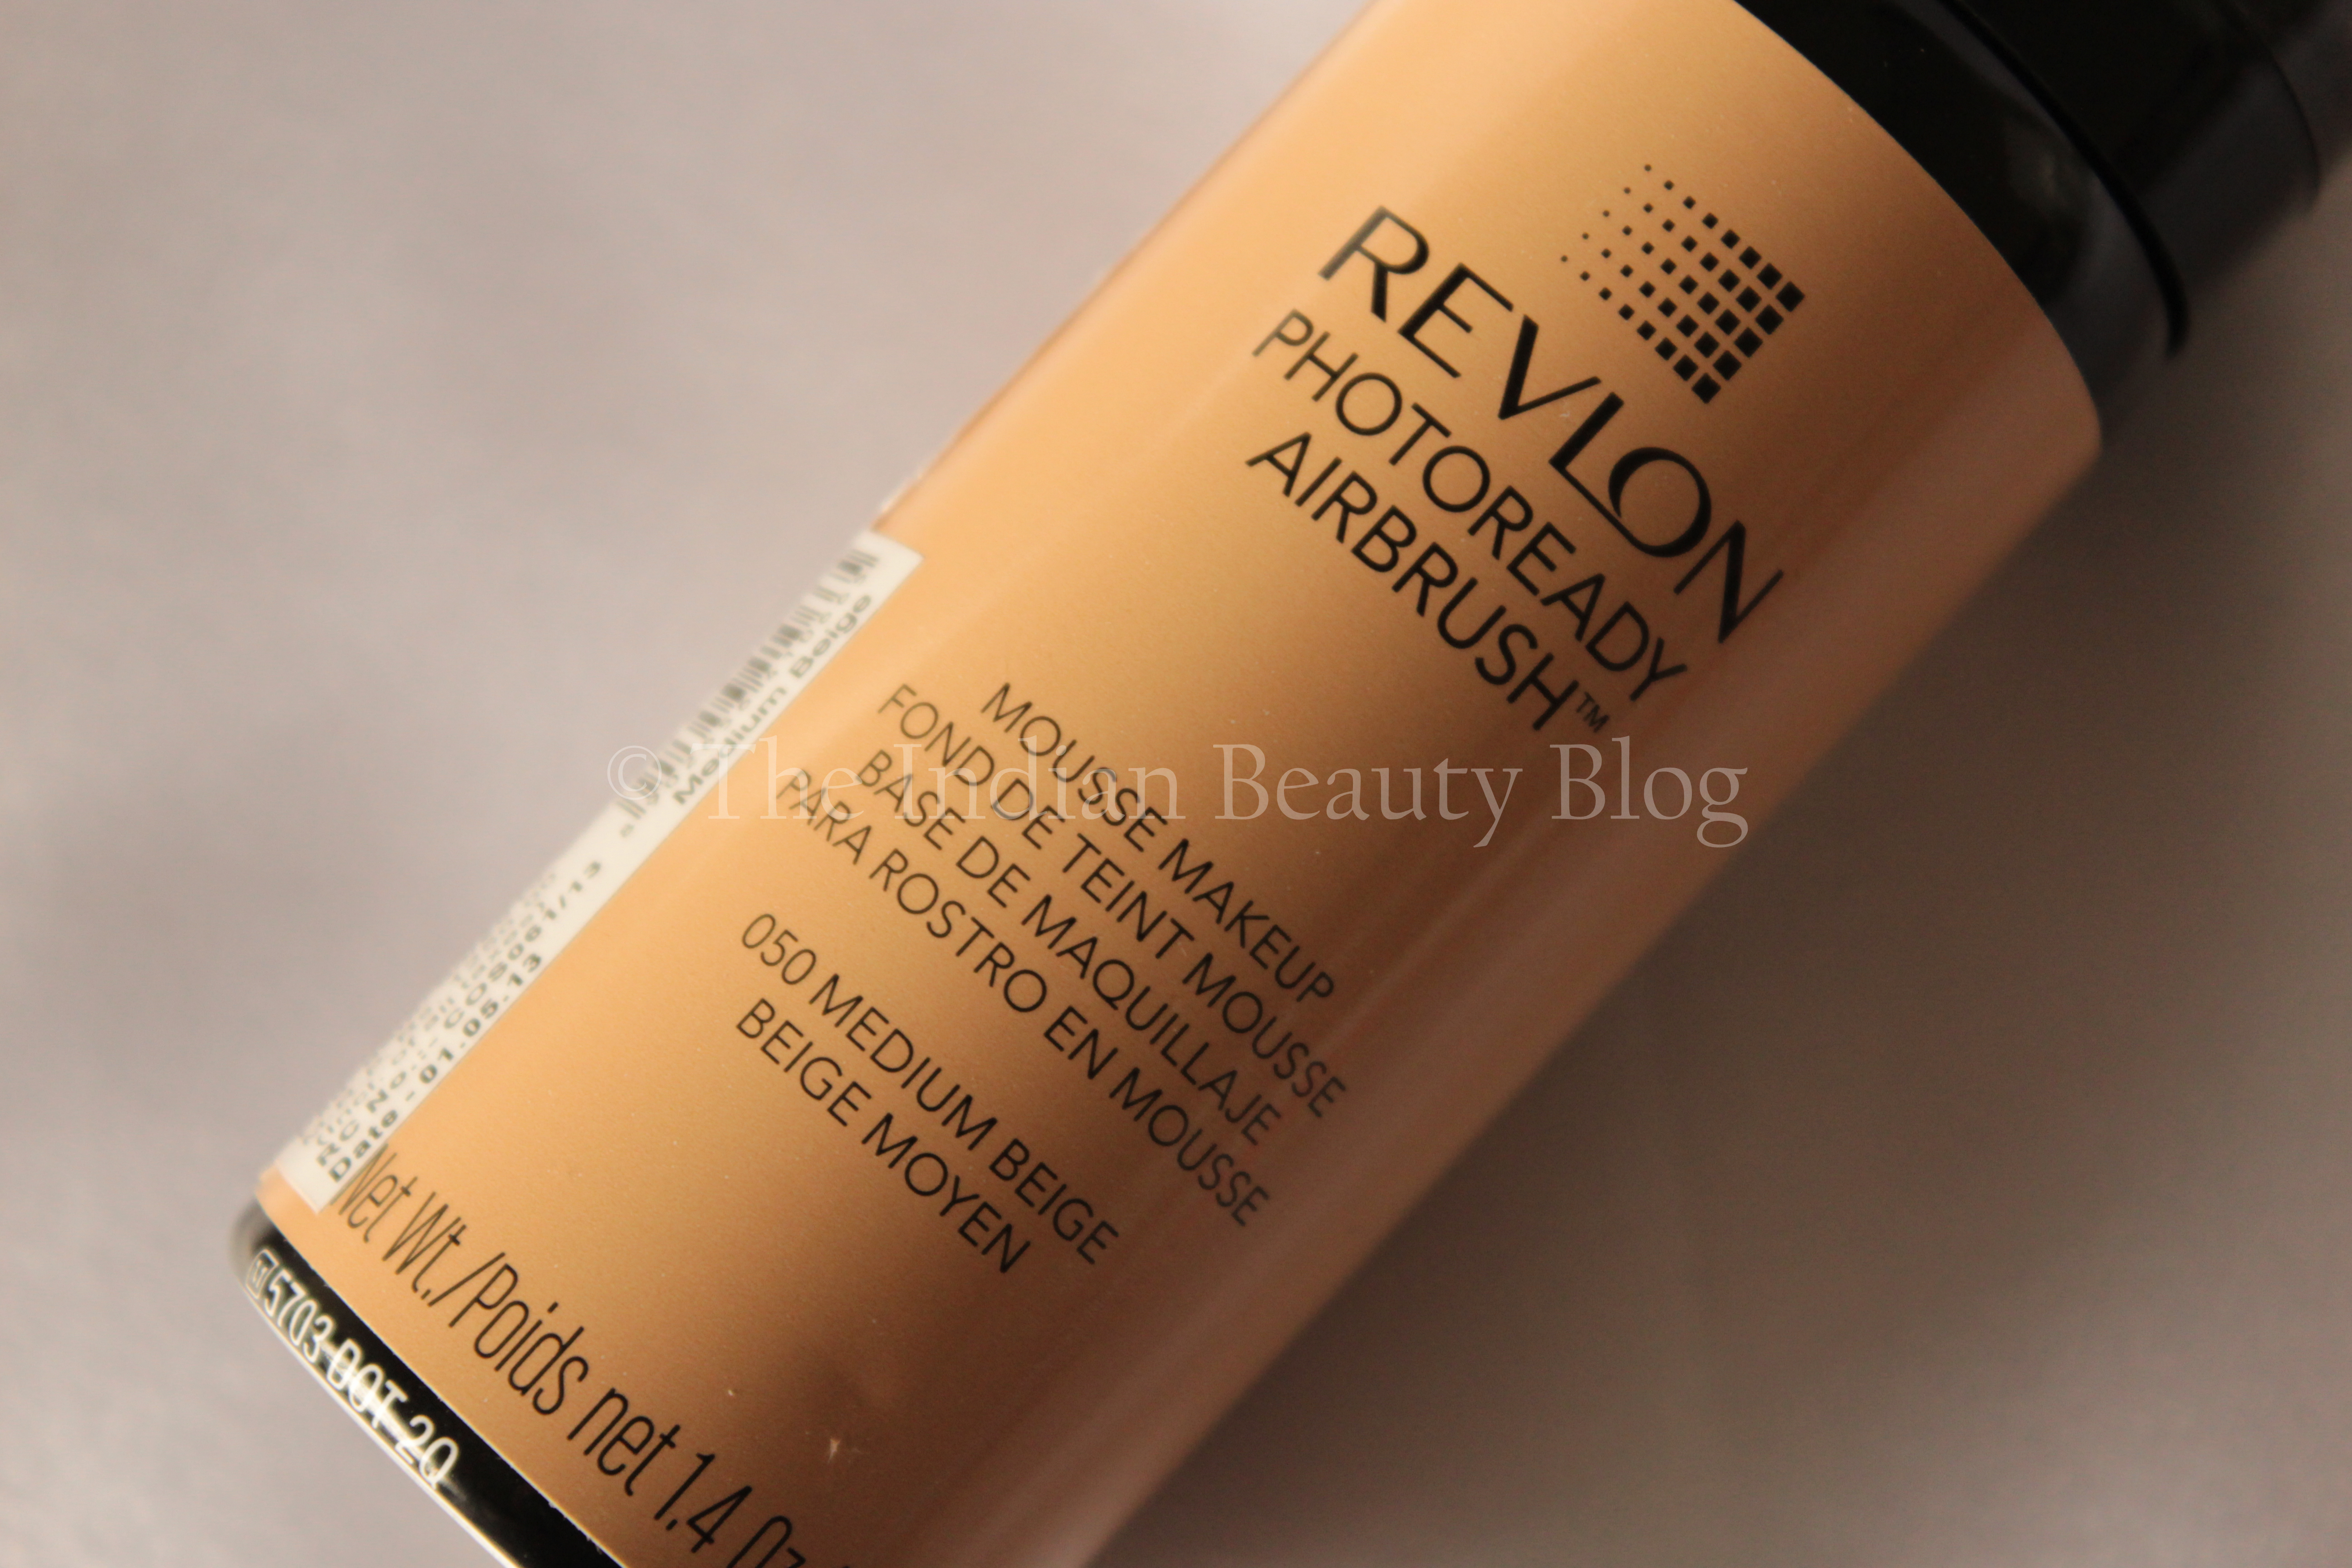 revlon phtoready airbrush foundation ...